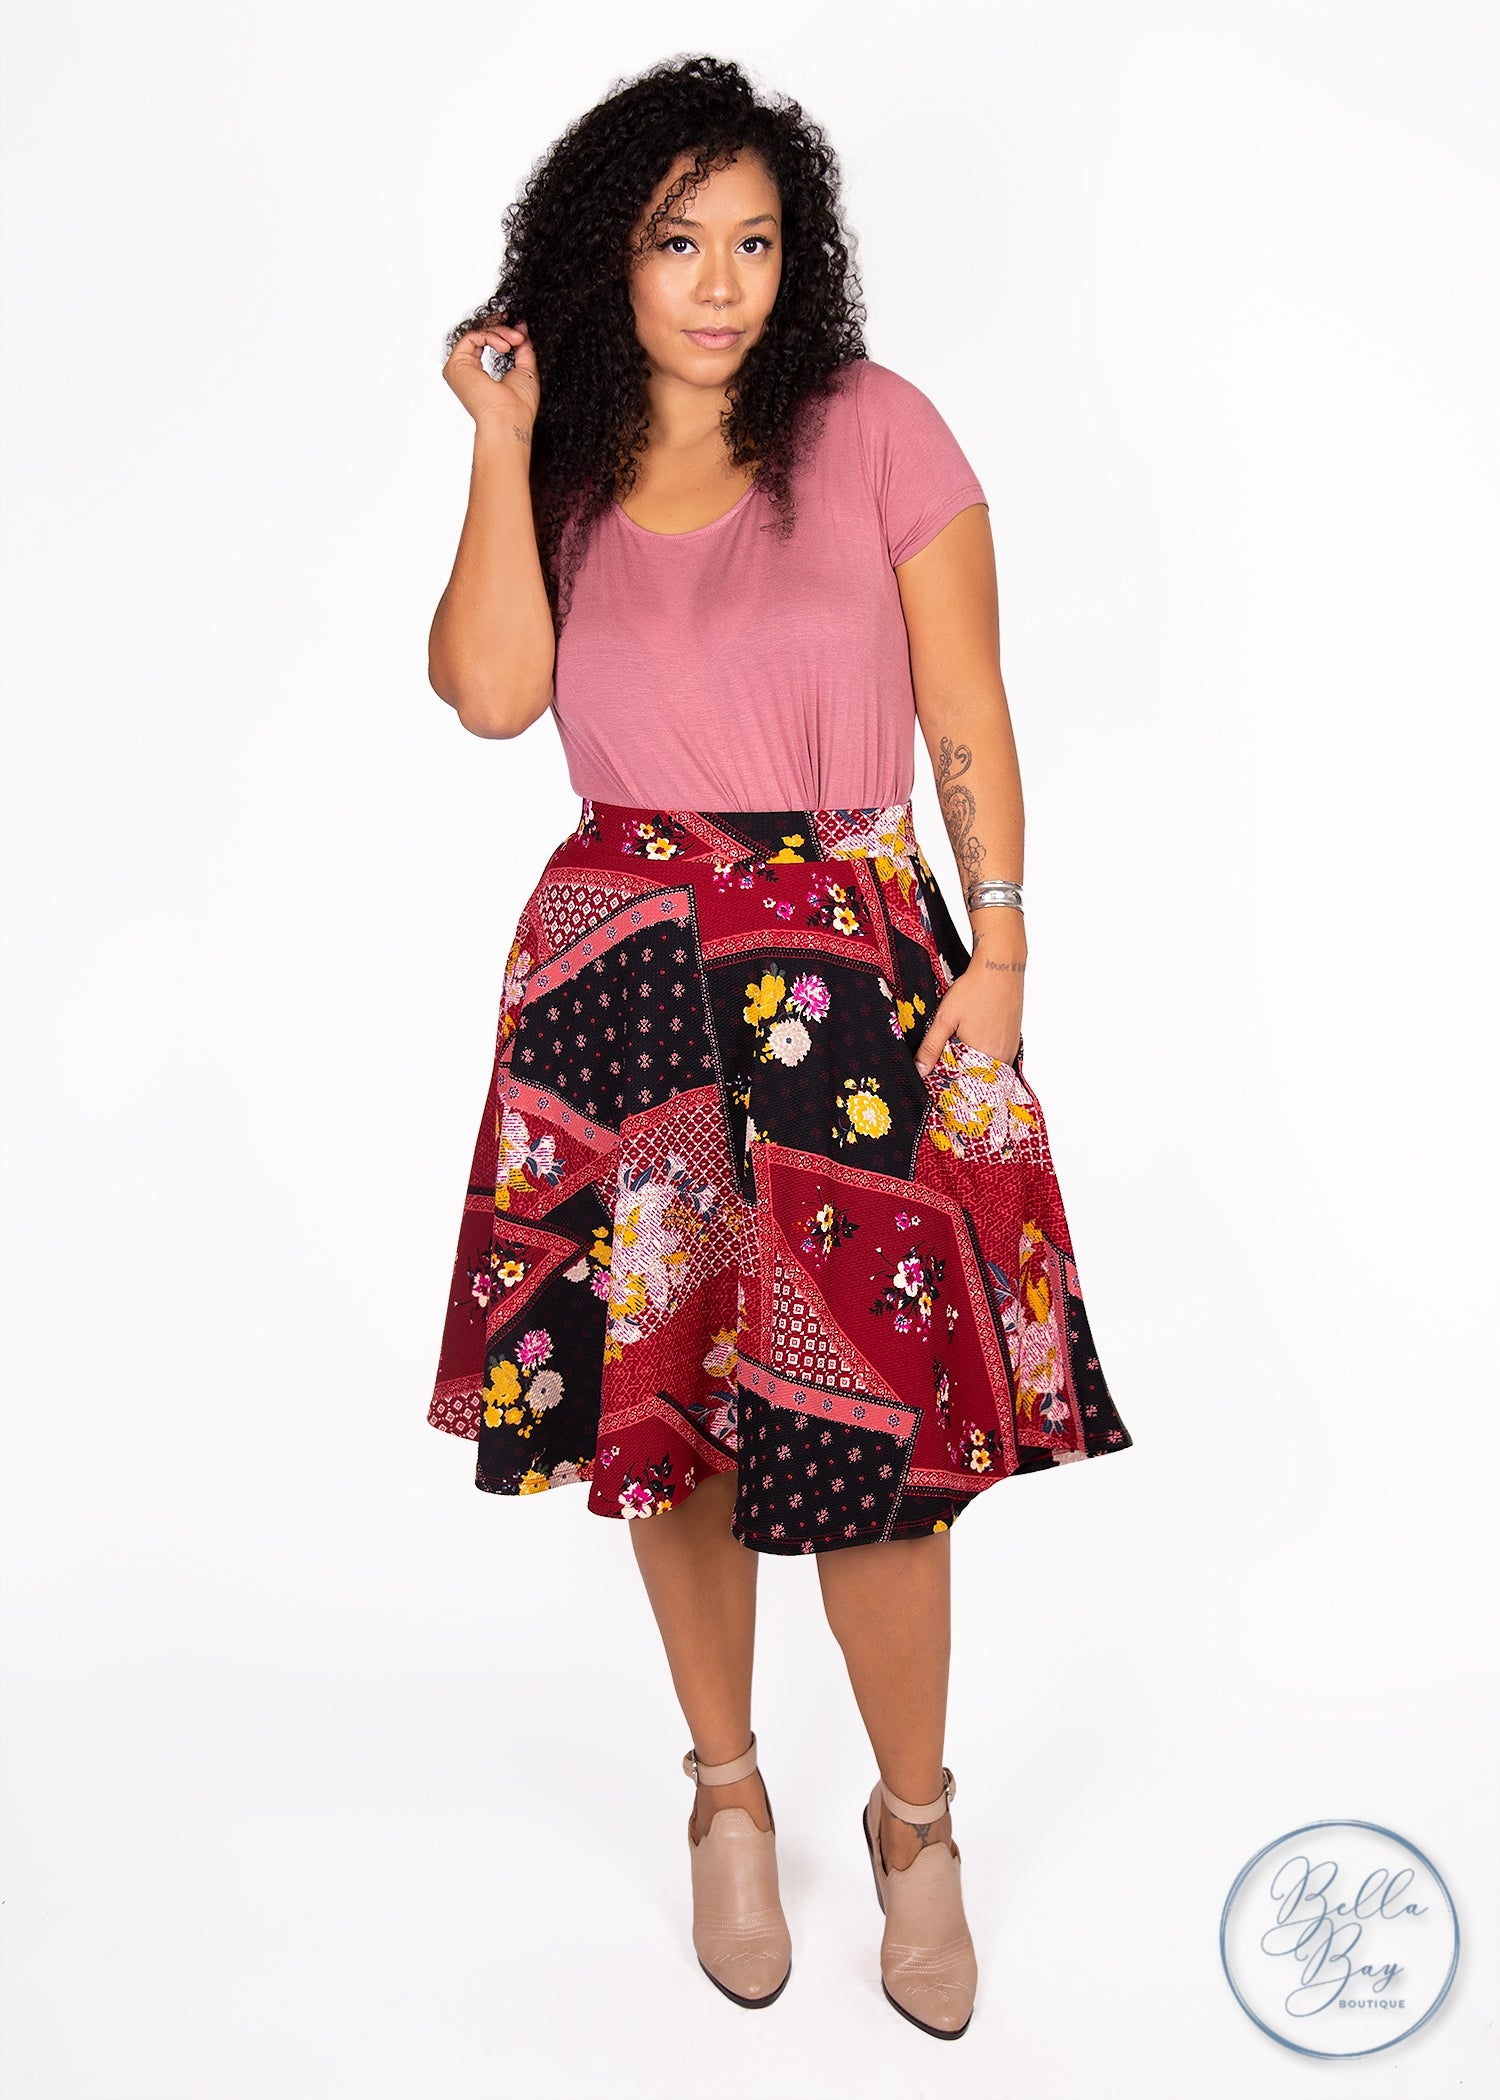 Paisley Raye Bloom Skirt- Patchwork (2X) - Paisley Raye with Bella Bay Boutique, shop now at  https://shopbellabay.com/ or locally in Newport Oregon